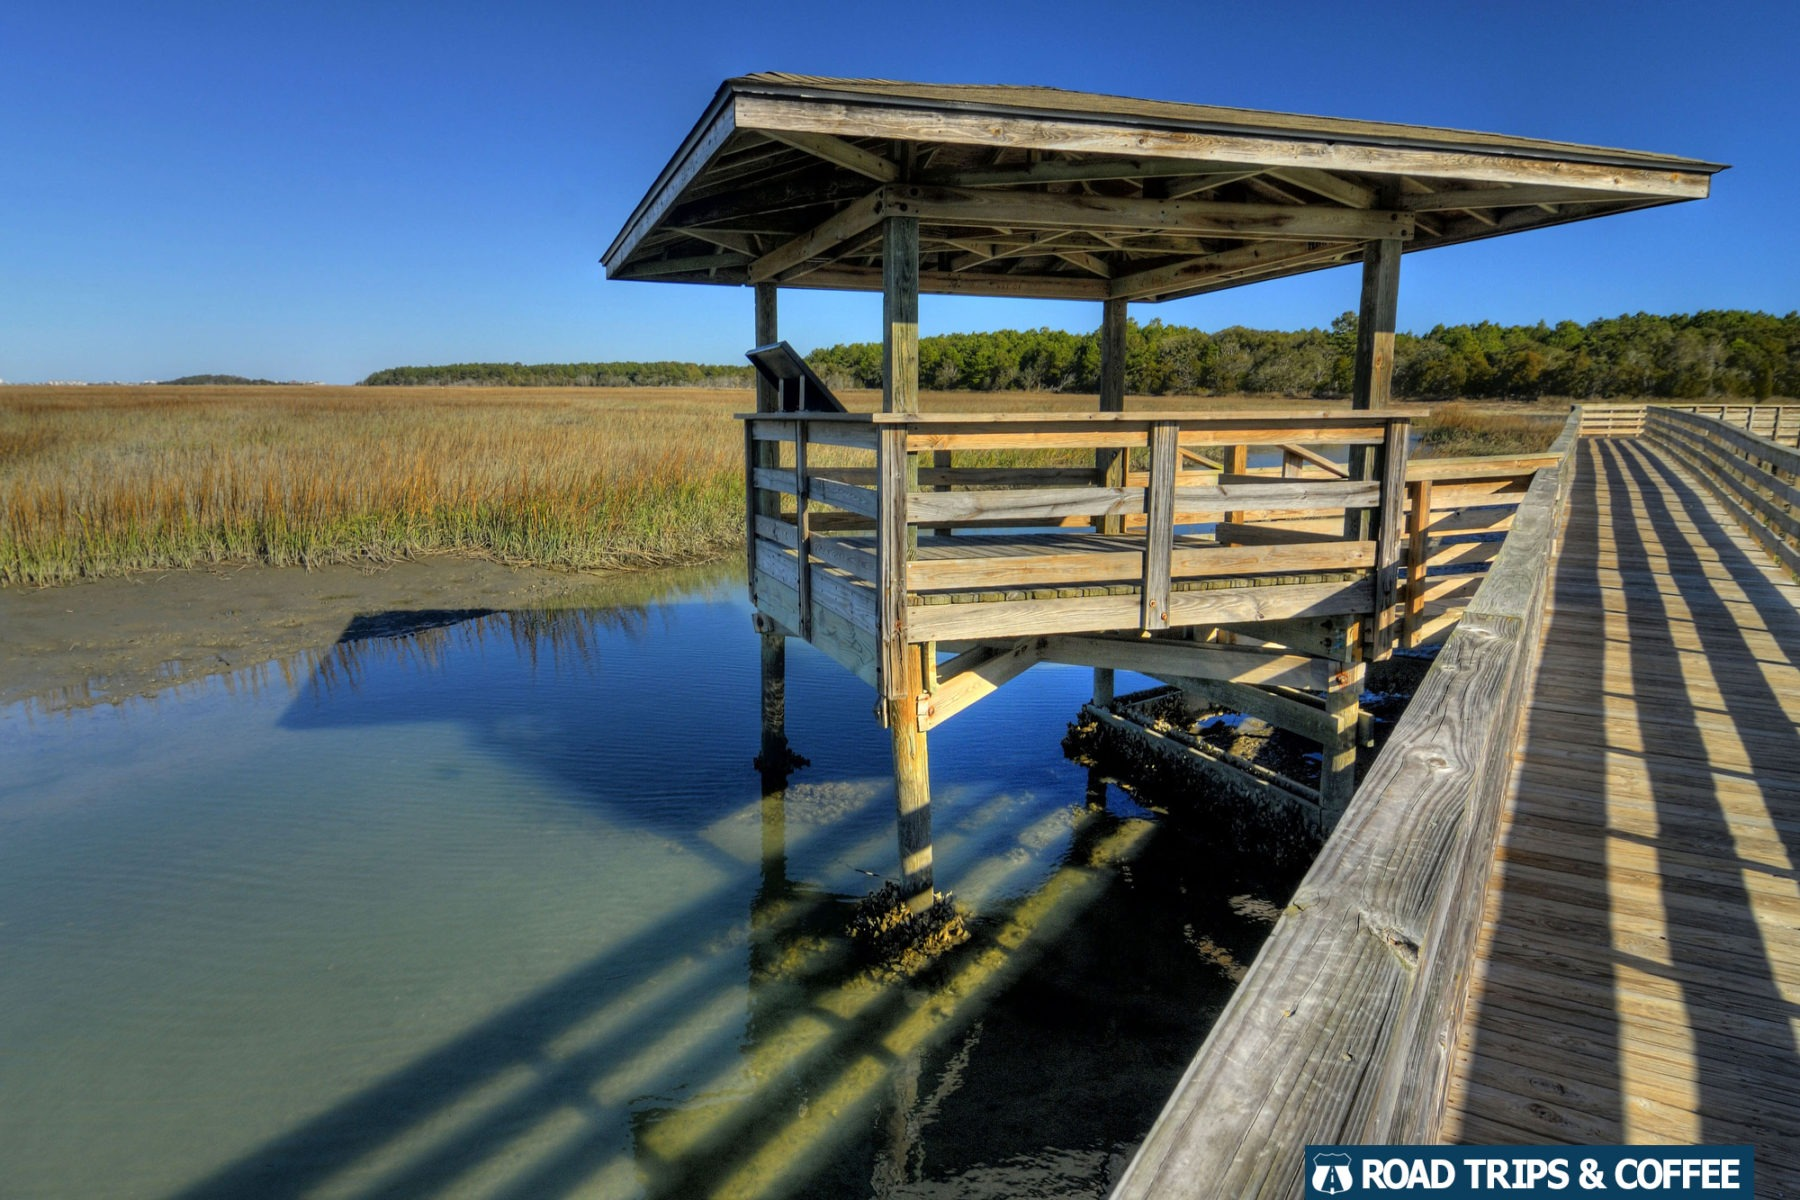 A covered shelter along a wooden boardwalk over the water at Huntington Beach State Park in Murrells Inlet, South Carolina